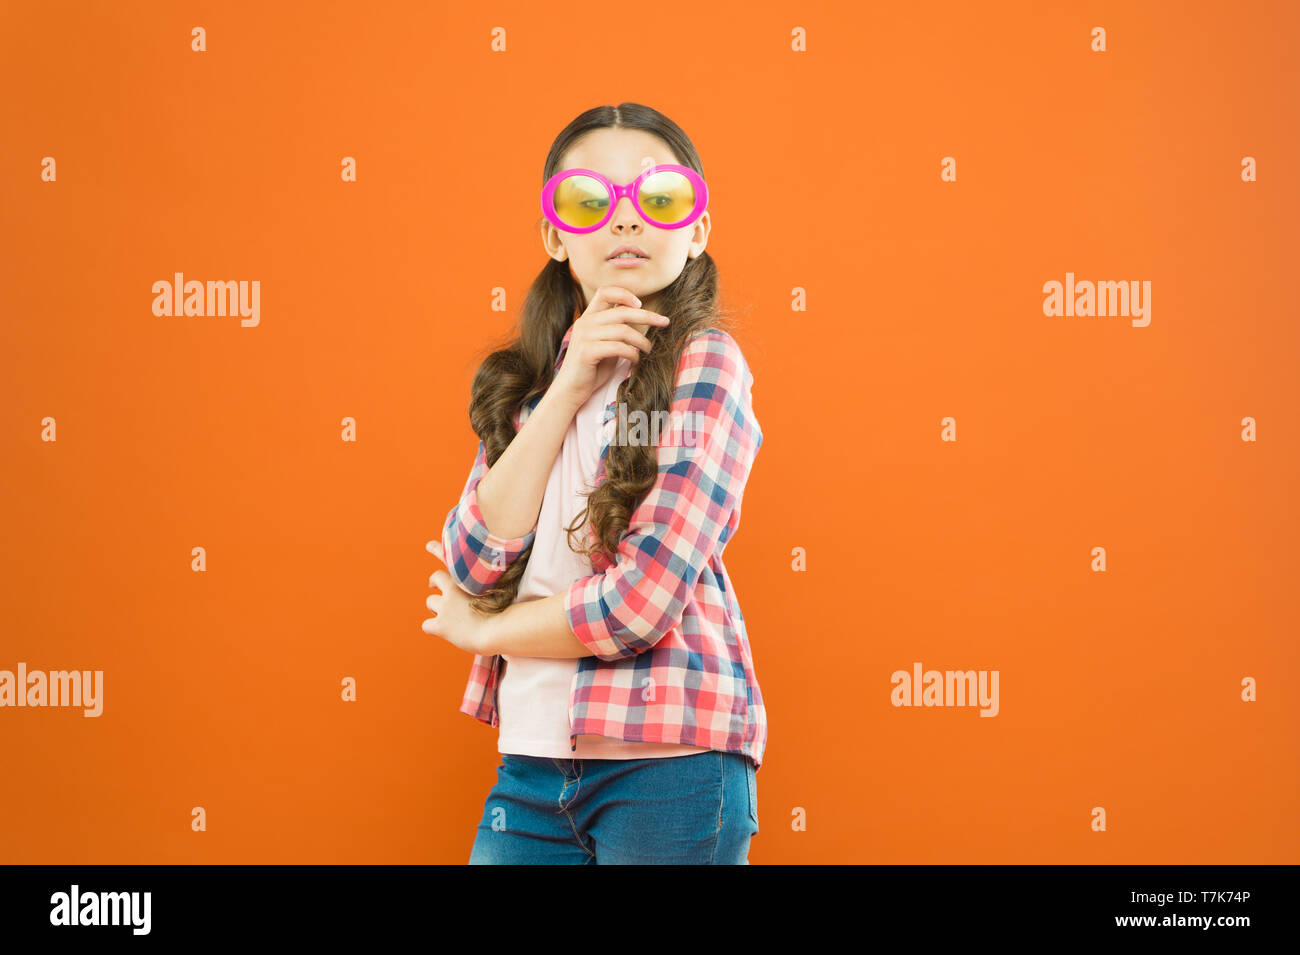 UV protection. Optics and eyesight. Child happy good eyesight. Sunglasses summer accessory. Eyesight and eye health. Care eyesight. Ultraviolet protection crucial while polarization more preference. - Stock Image